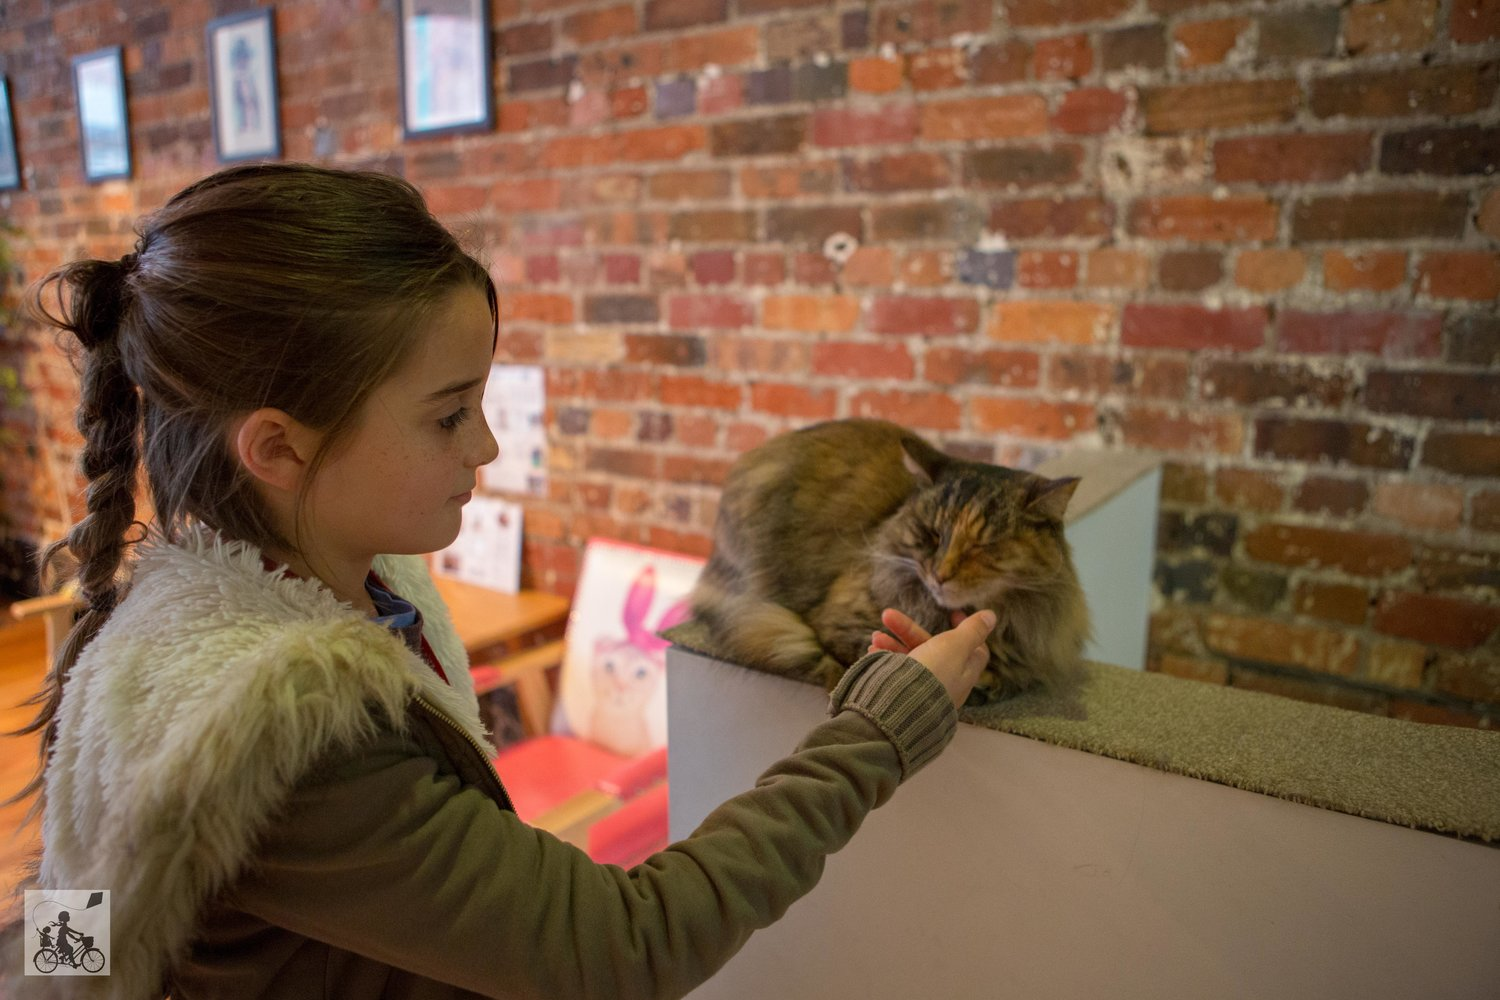 Cat+Cafe+-++Mamma+Knows+West-3.jpg